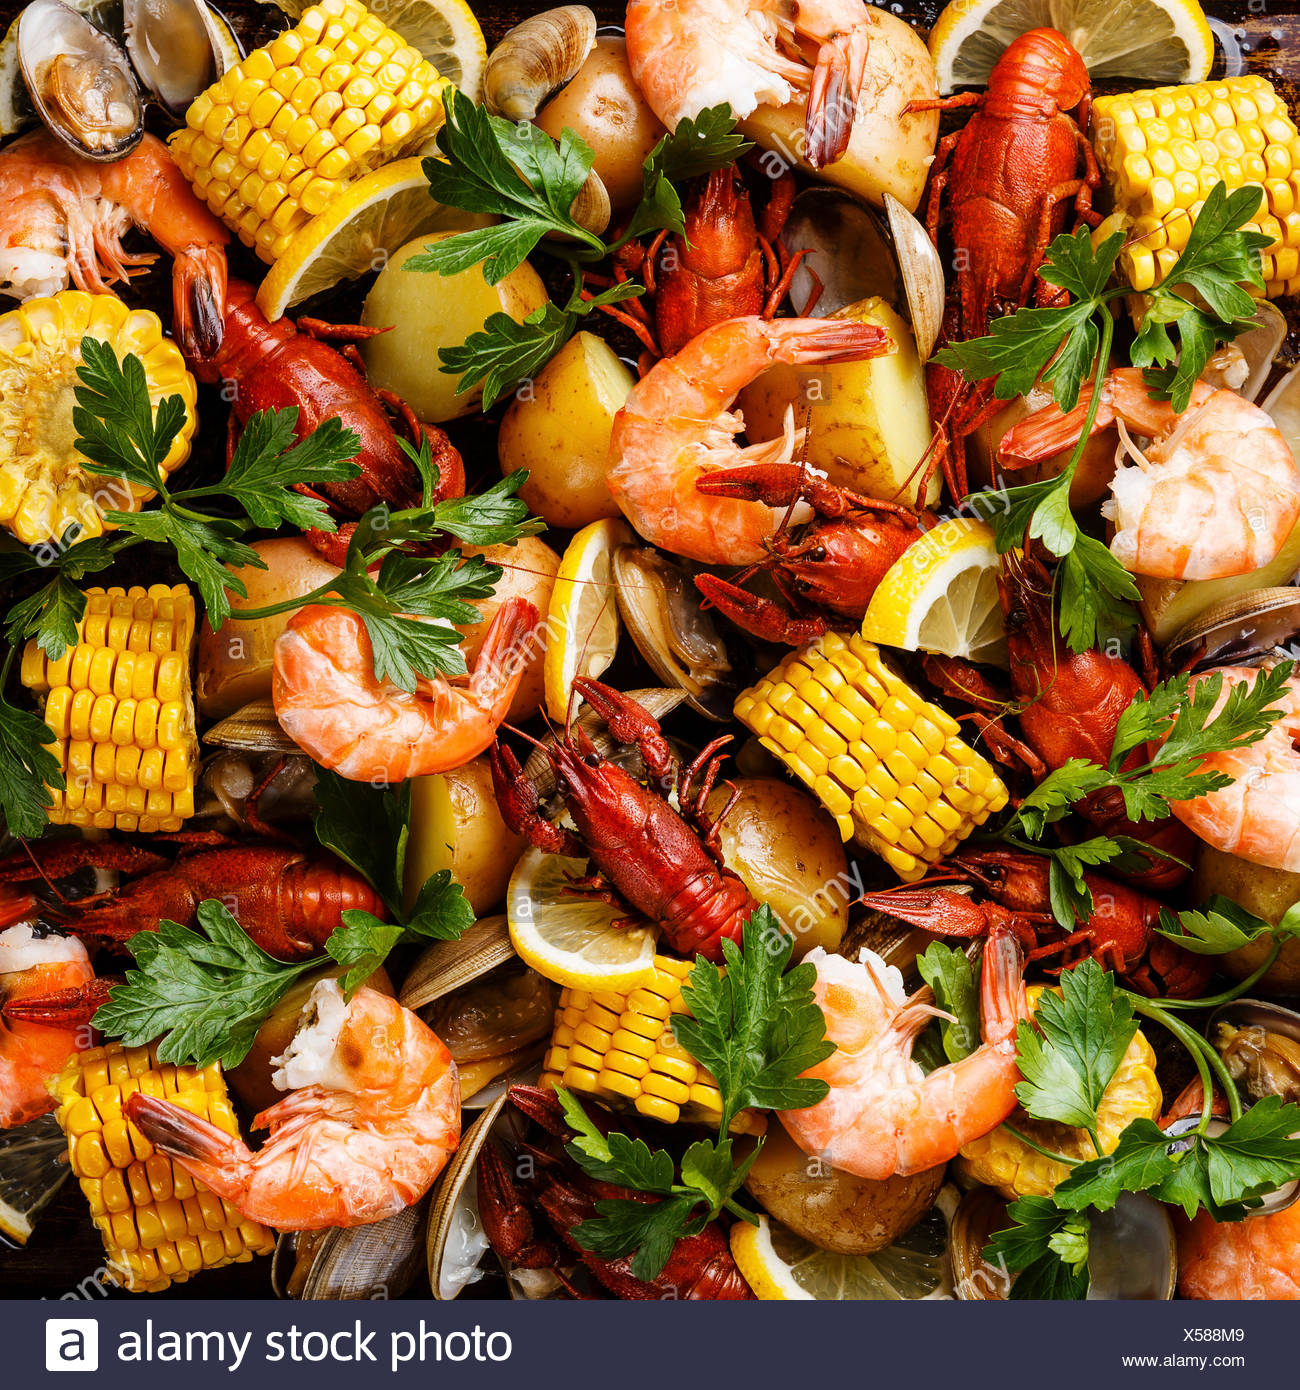 Clambake Seafood boil with Corn on the cob, Potatoes, Prawns, Crayfish and Clams - Stock Image